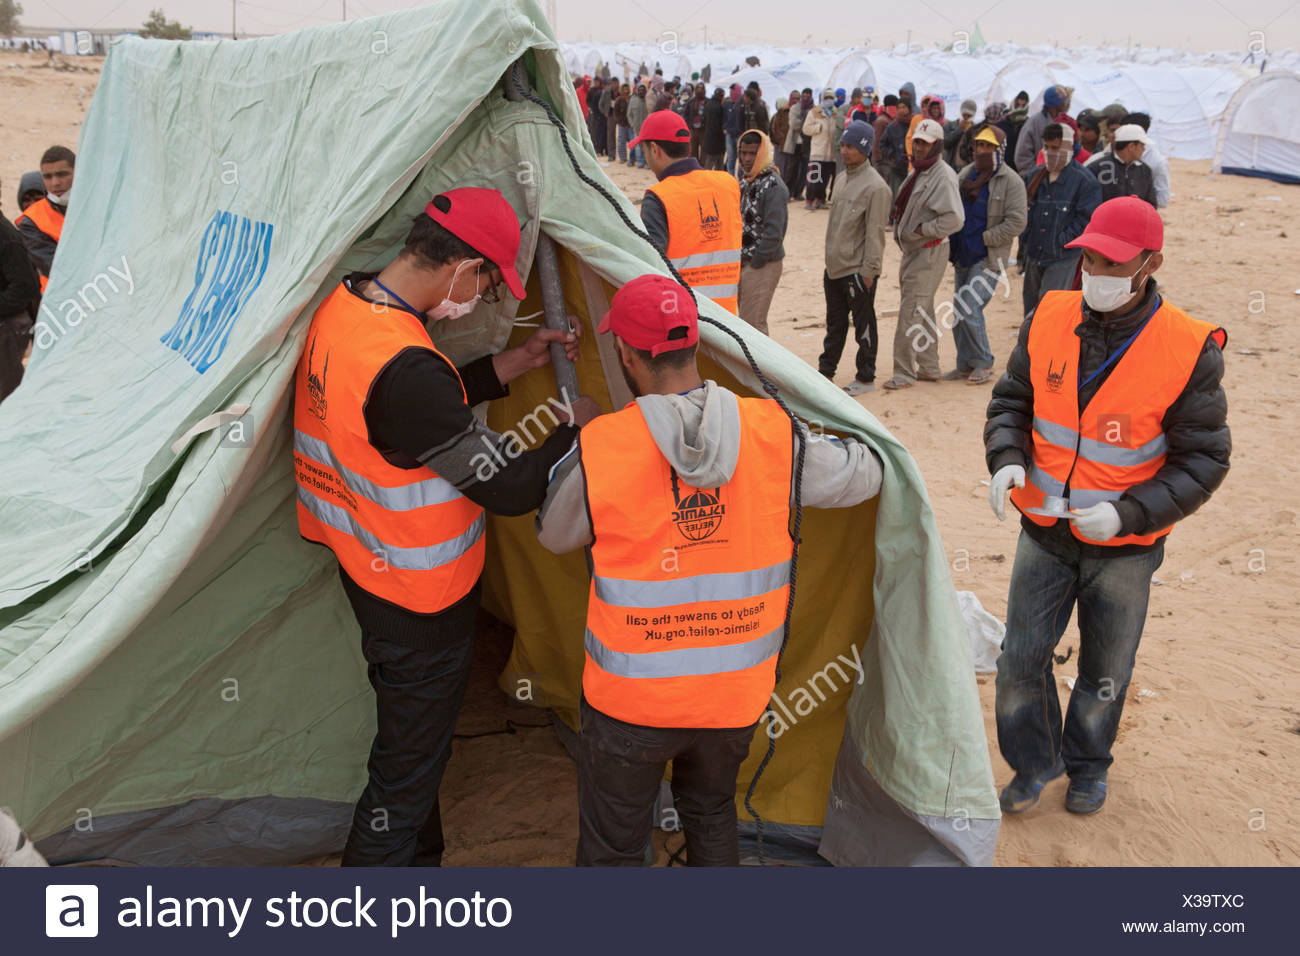 Members of the aid organisation Islamic Relief pitching a tent, Ben Gardane, Tunisia - Stock Image